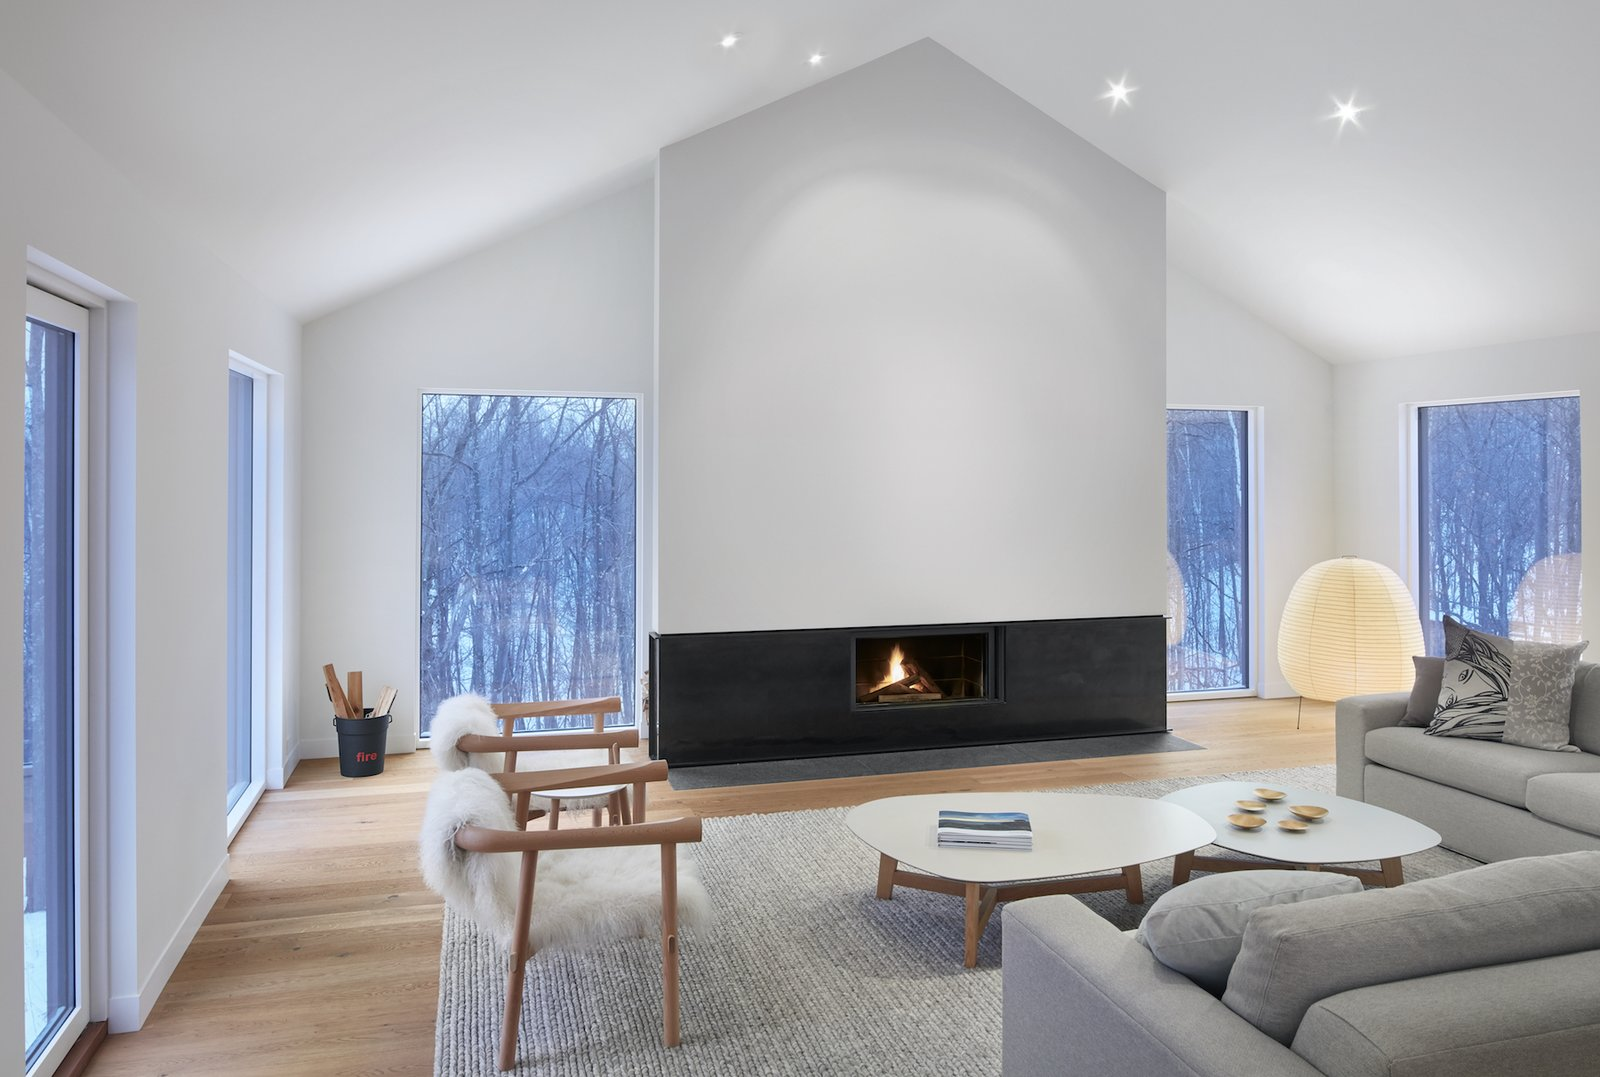 Tagged: Living Room, Standard Layout Fireplace, Light Hardwood Floor, Chair, and Recessed Lighting.  Alta Chalet by Leibal